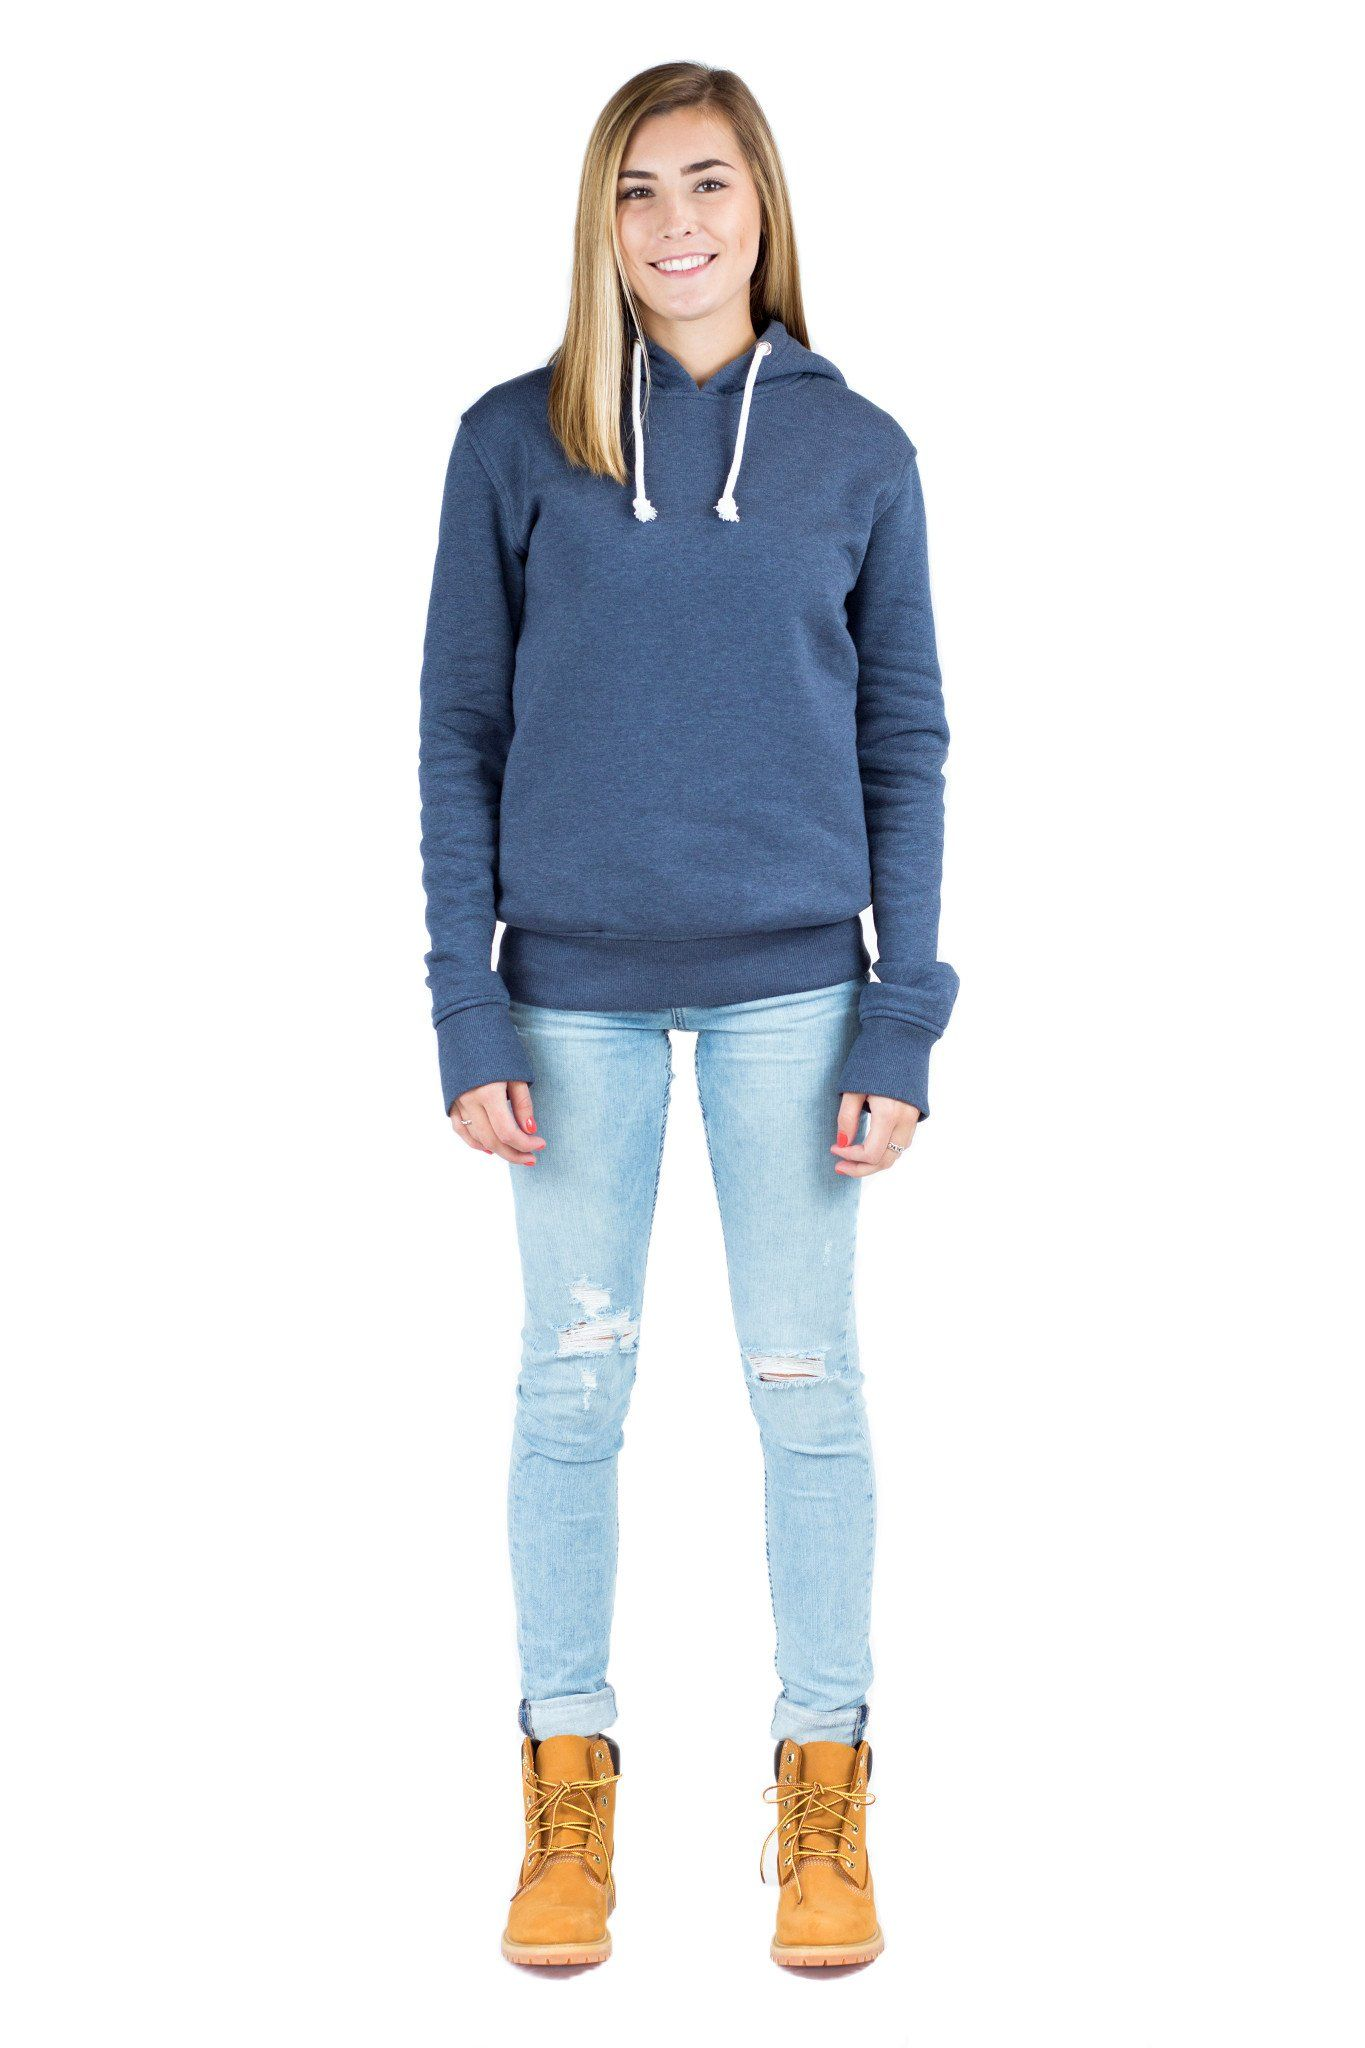 bc8ca7f561b Women Blue Pullover Hoodie with side zip pockets. Long sleeve